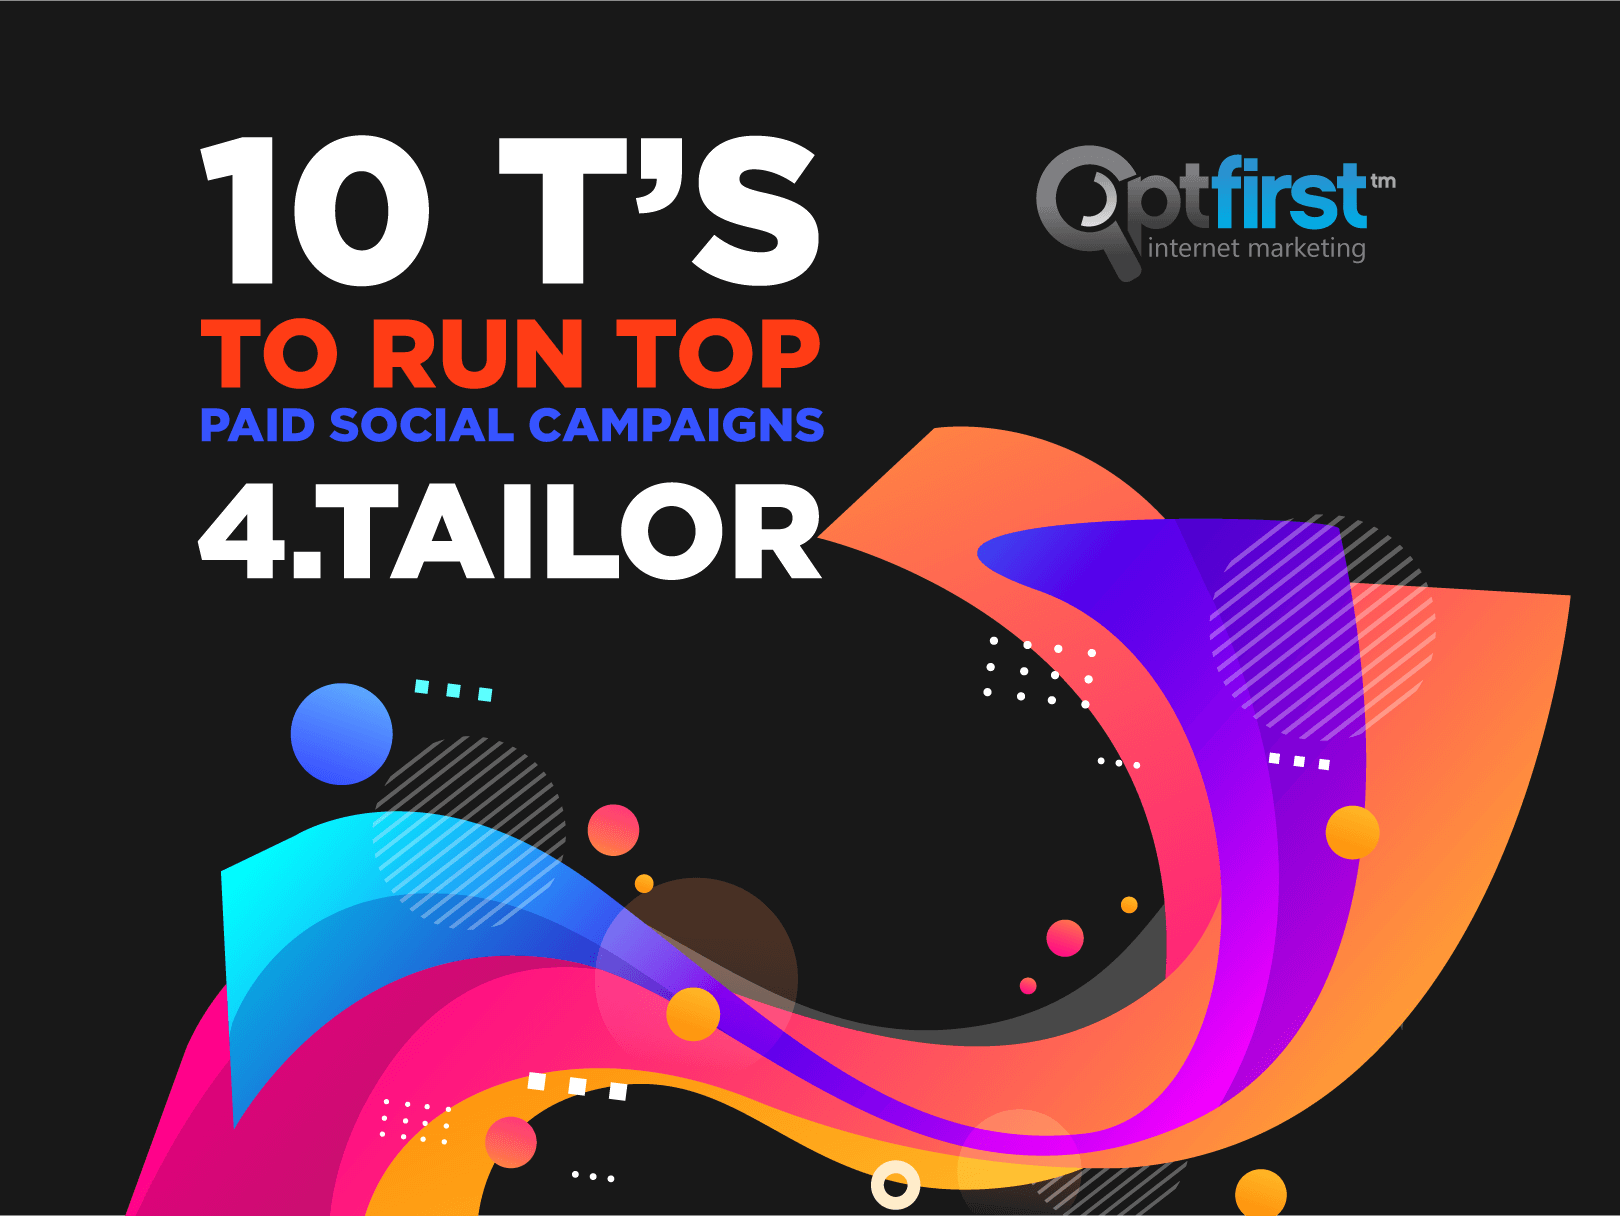 10 T's to Run Top Paid Social Campaigns, Step 4: Tailor